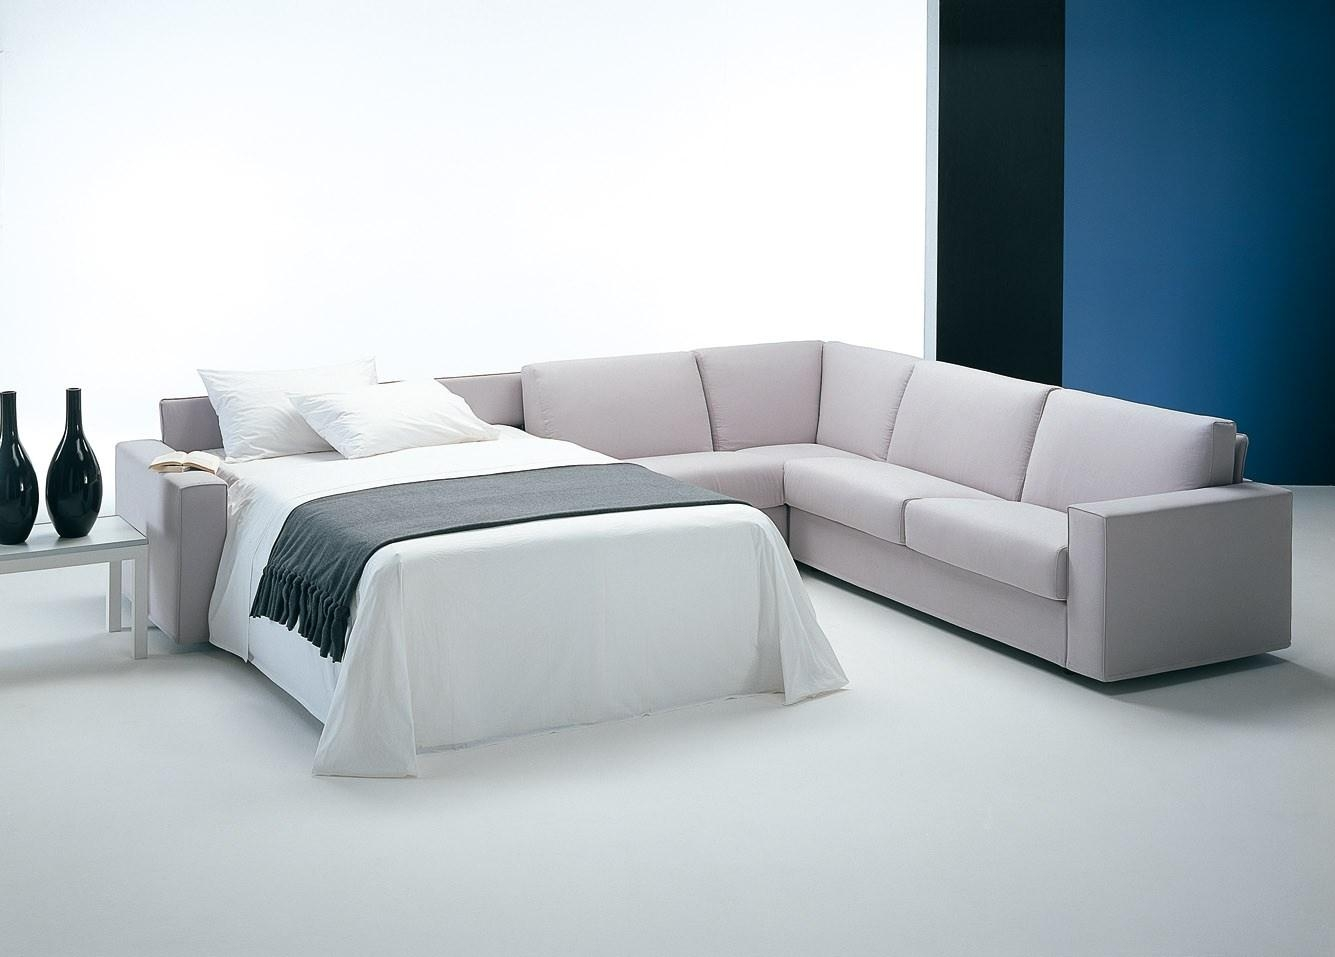 Sectional Sofa Bed Joaobodema For Giant Sofa Beds (Image 17 of 20)